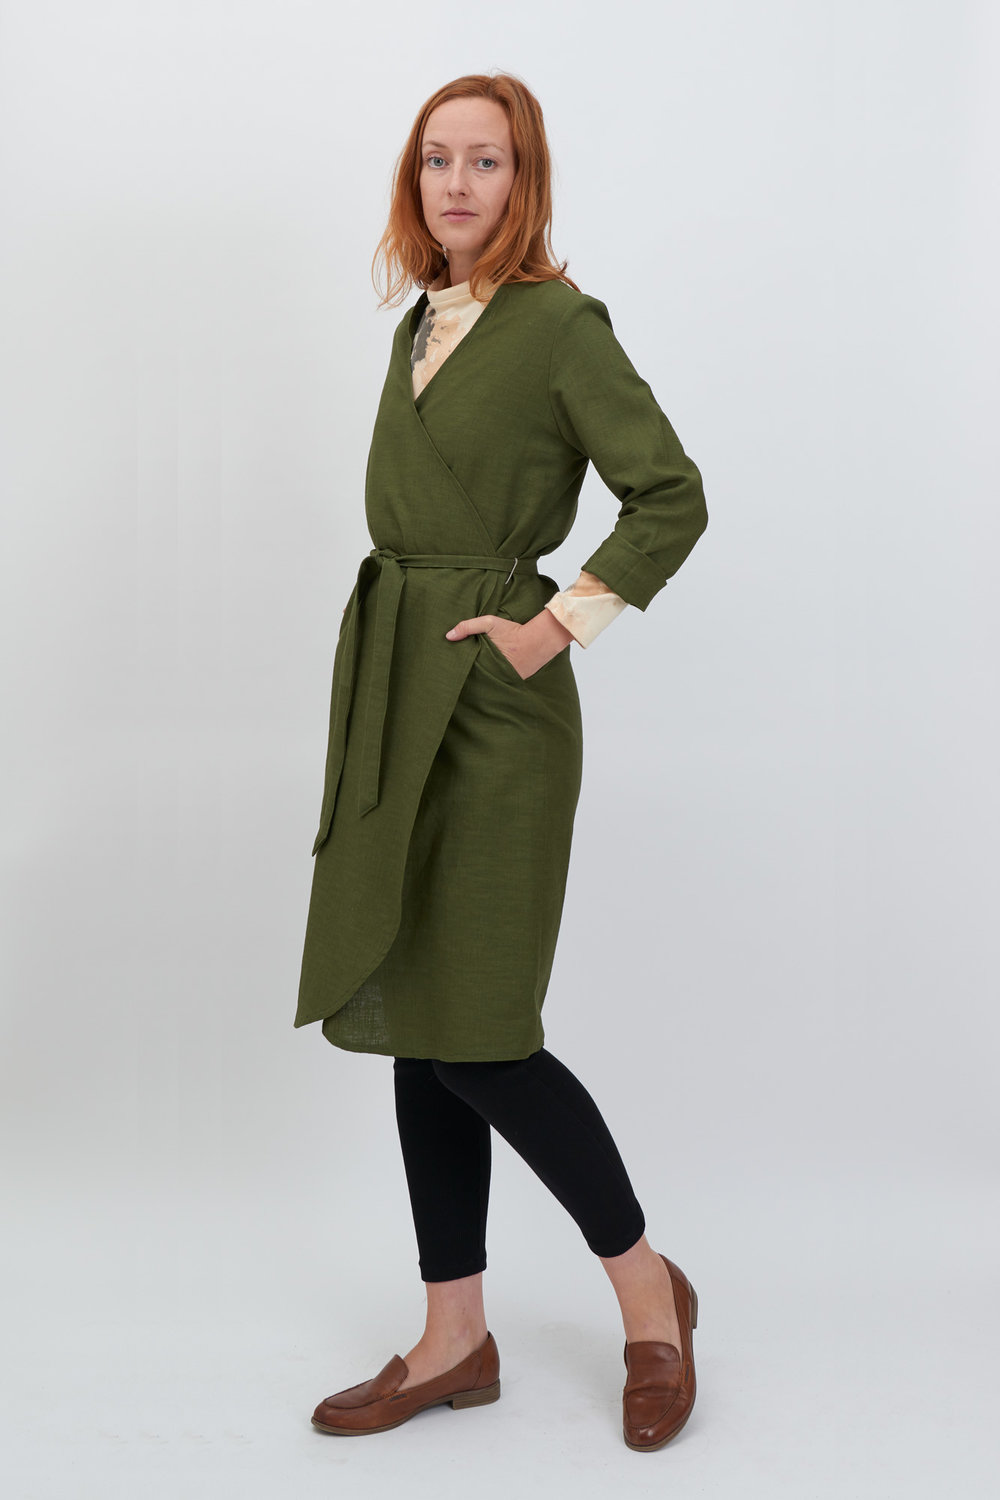 jacket-olive-closed.jpg